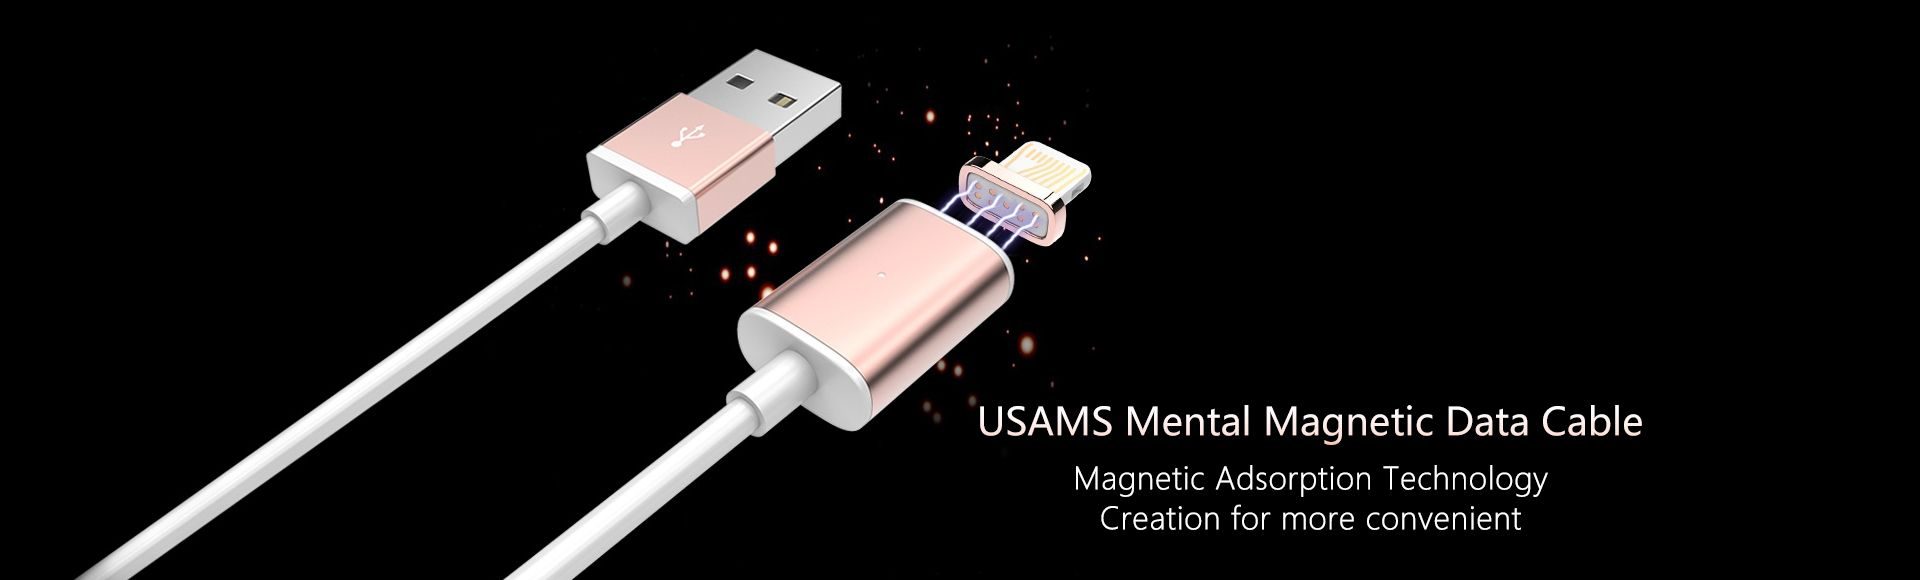 USAMS Mental Magnetic iPhone Data Cable - Magnetic adsorption technology creation for more convenient